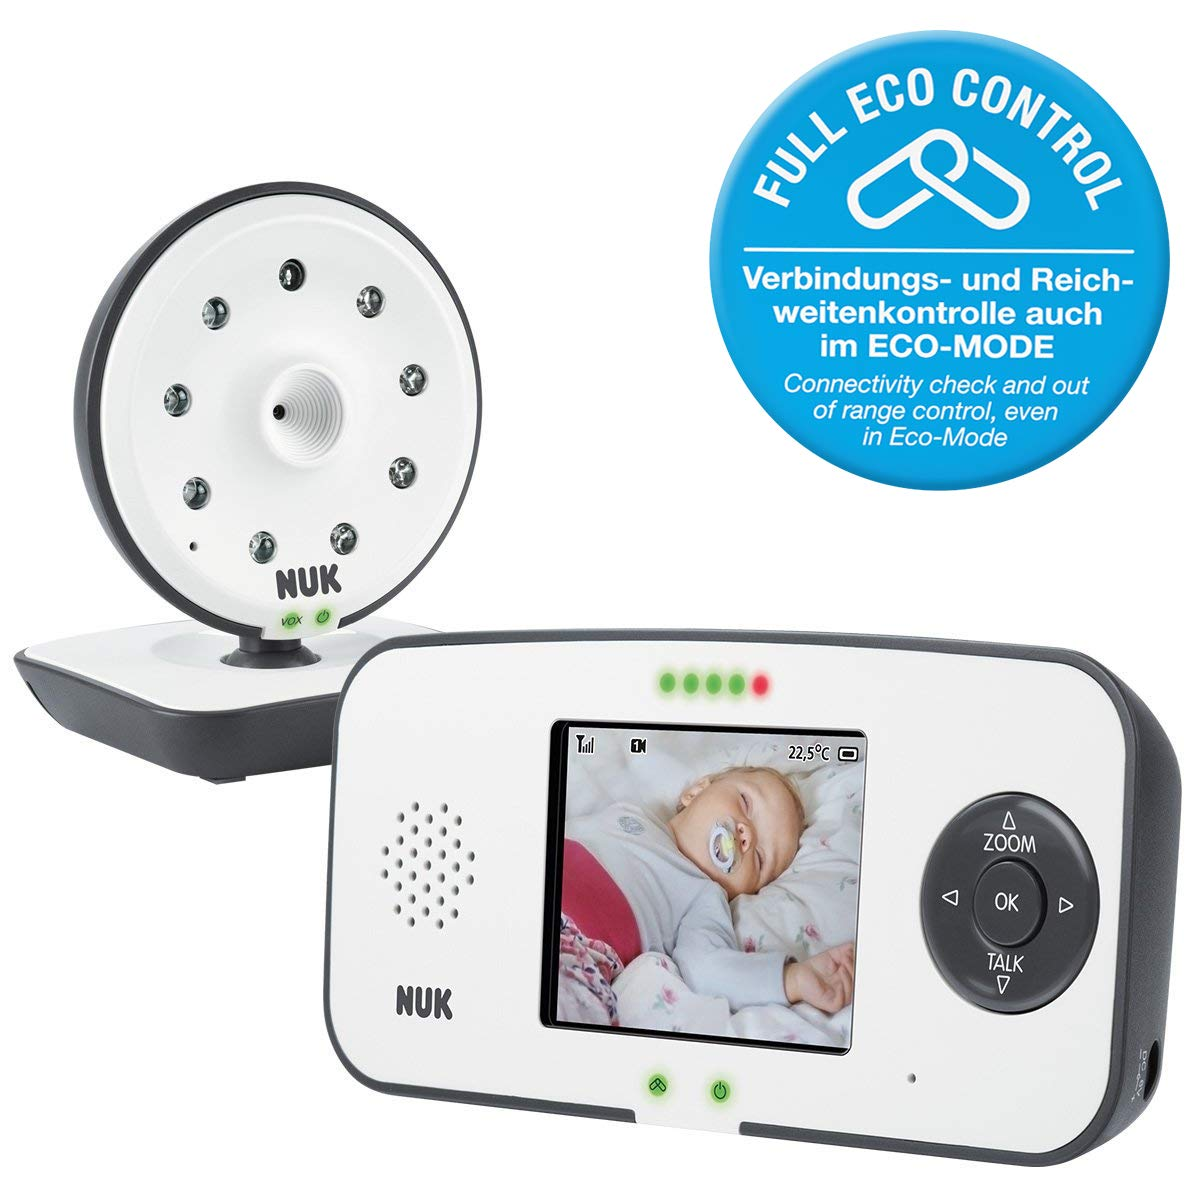 NUK 550VD Eco Control Digitales Babyphone mit Kamera und Video Display, bis zu 4 Kameras